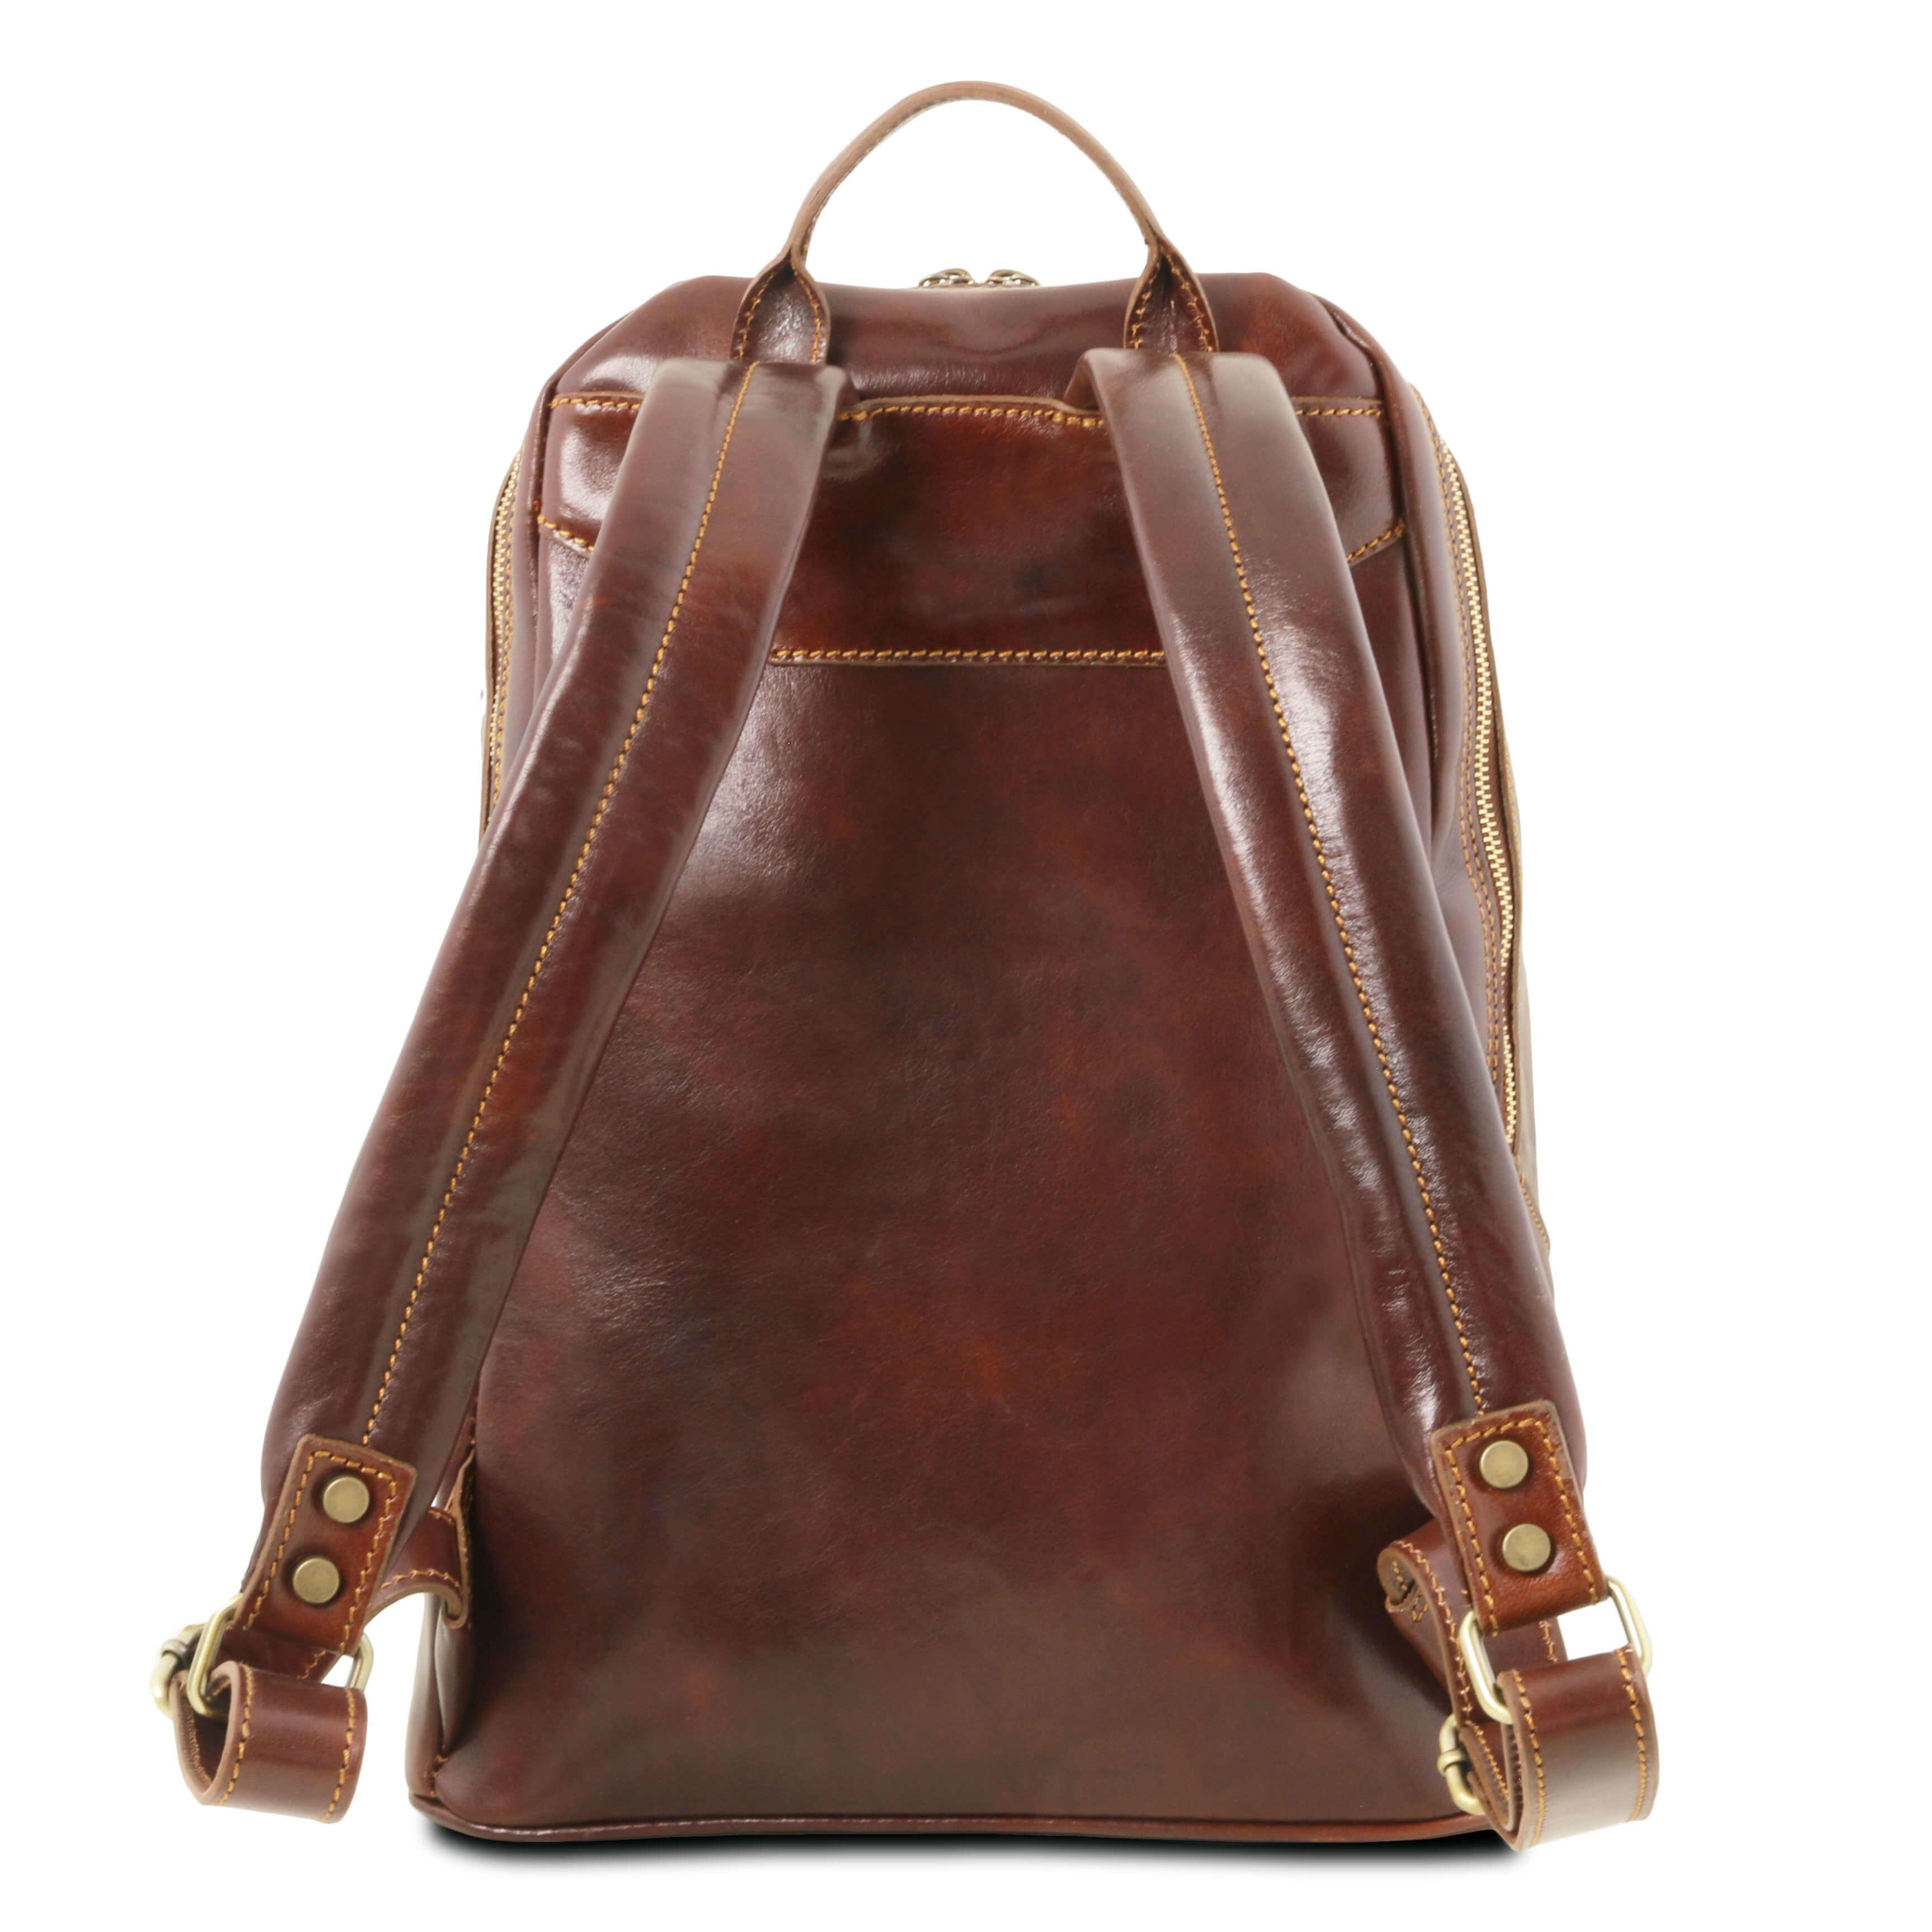 TL141715 Tuscany Leather Mumbai Travel - Hiking - Backpack - Rucksack - Bag